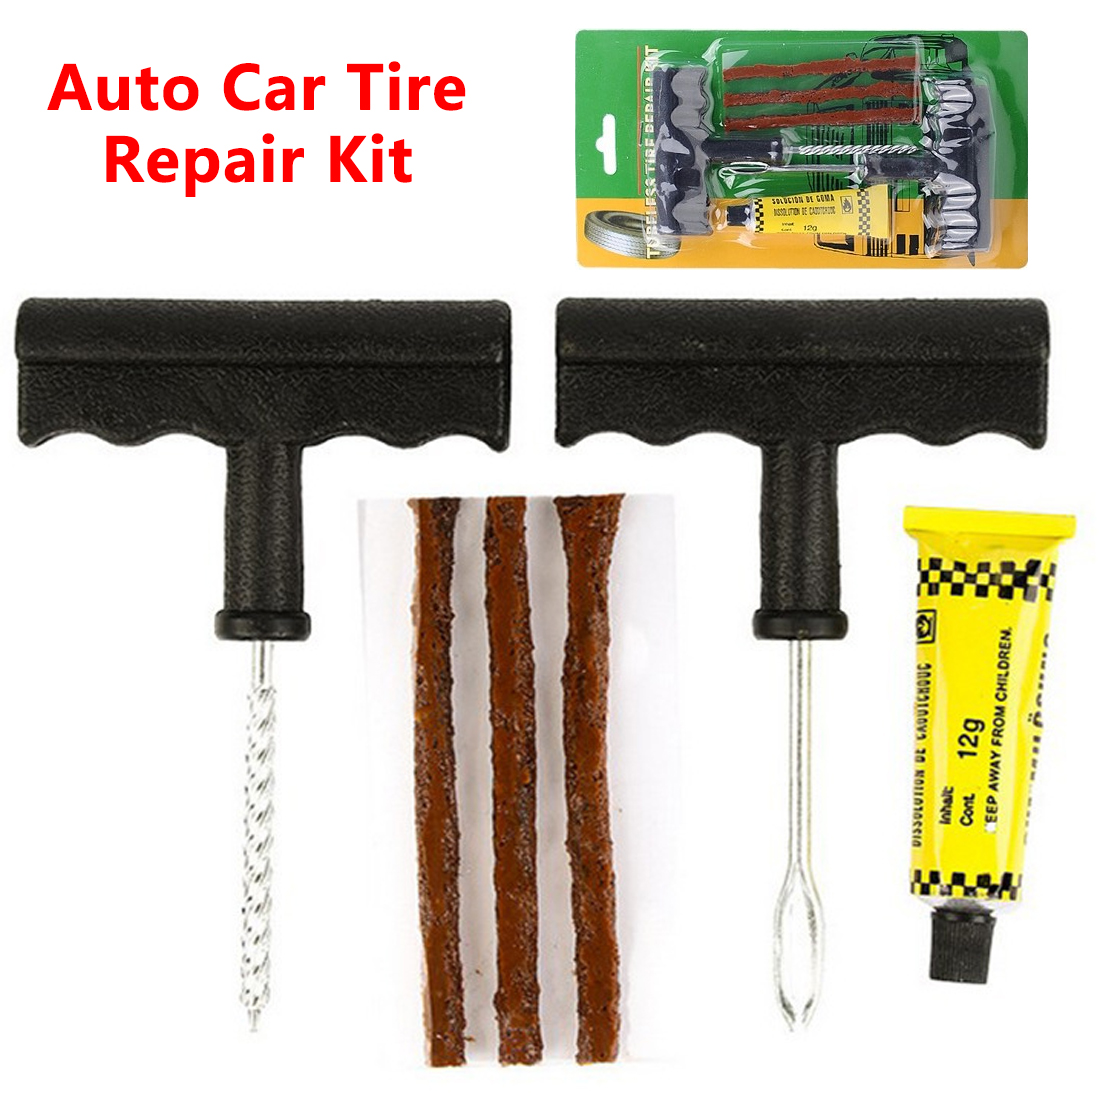 Auto Tubeless Tire Tyre Repair Kit Puncture Plug Repair Kit Hand Tools 6Pcs Car Accessories Auto Car Bike Tire Repair Tools Kit